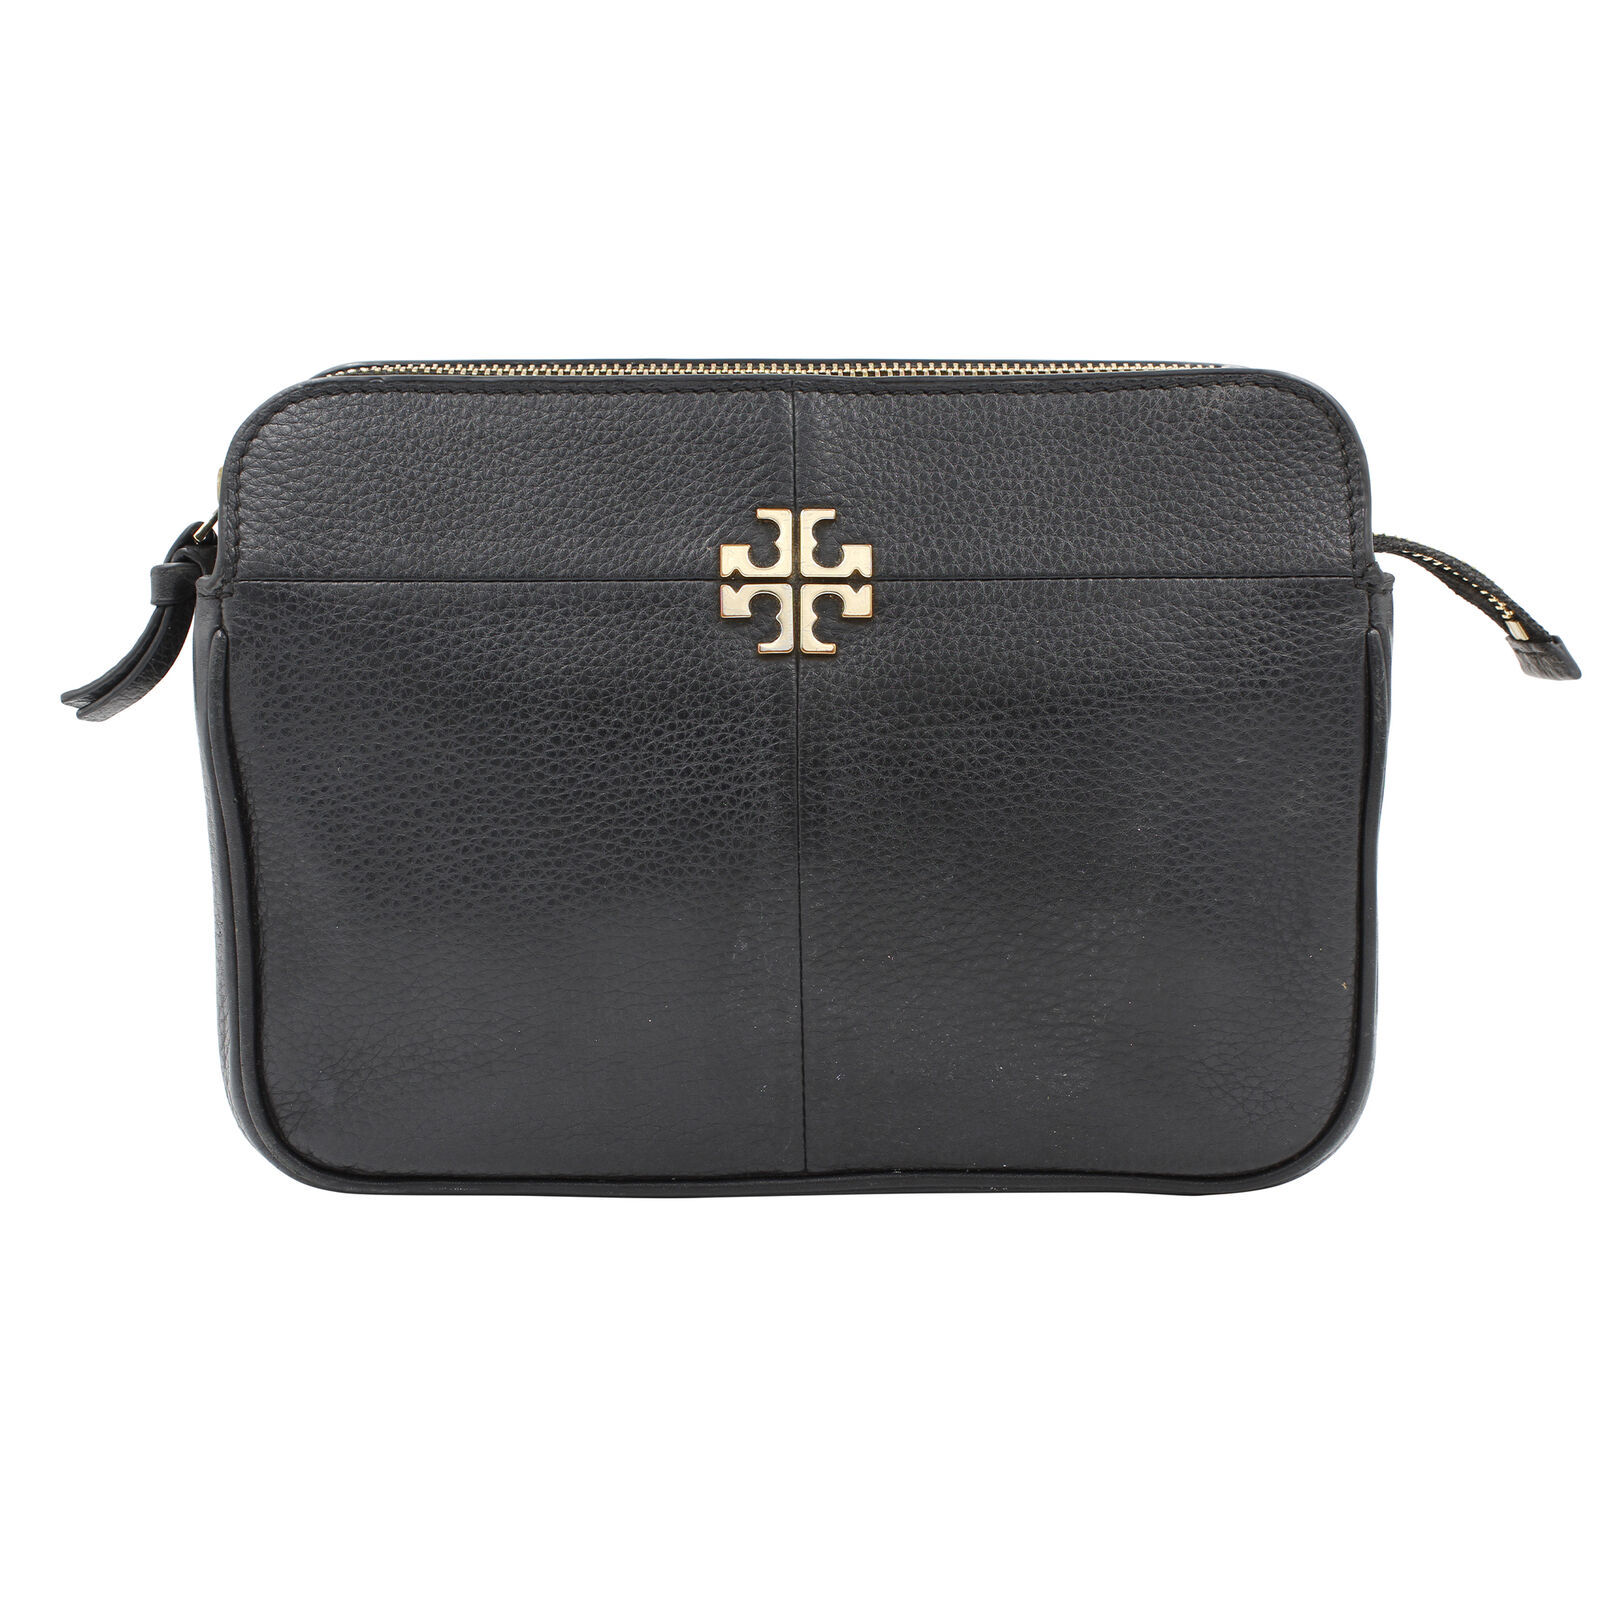 Tory Burch Corss body Leather Black Bag 29471-001